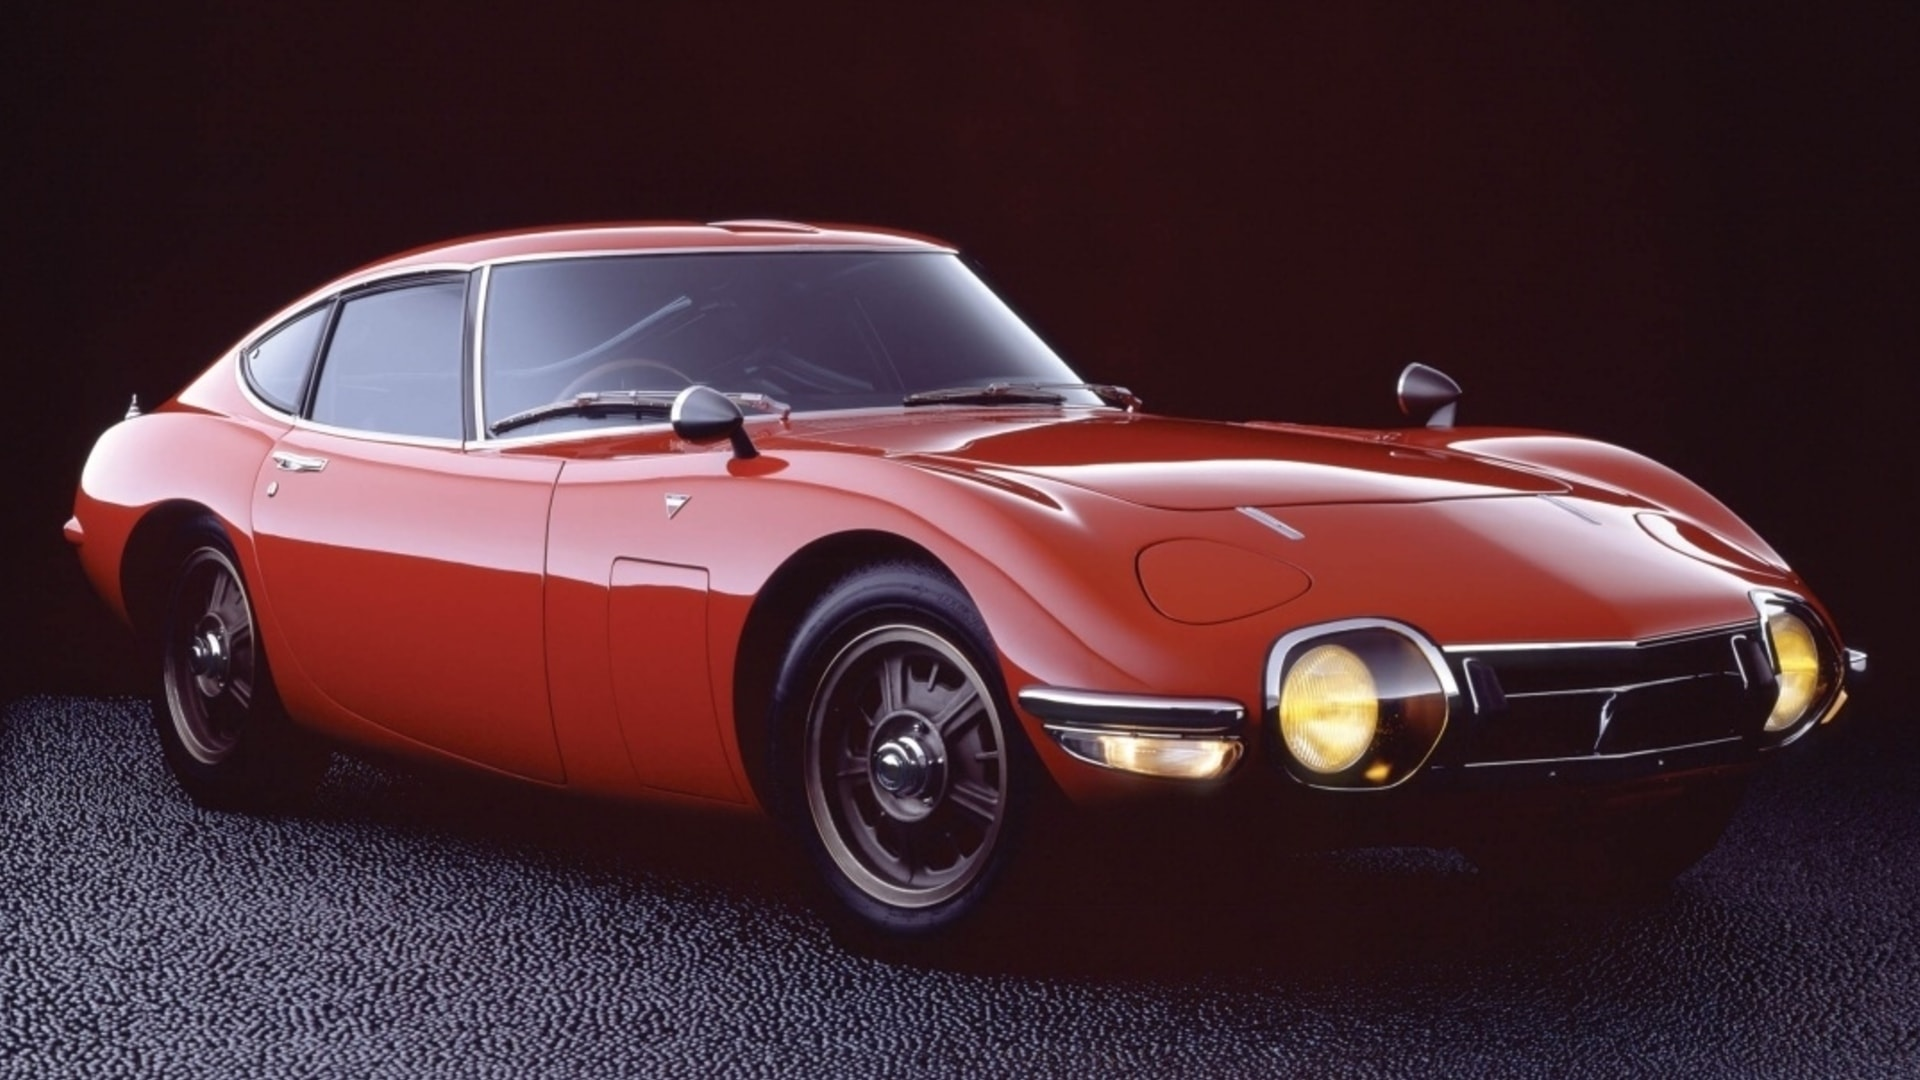 1967 Toyota 2000GT Full hd wallpapers